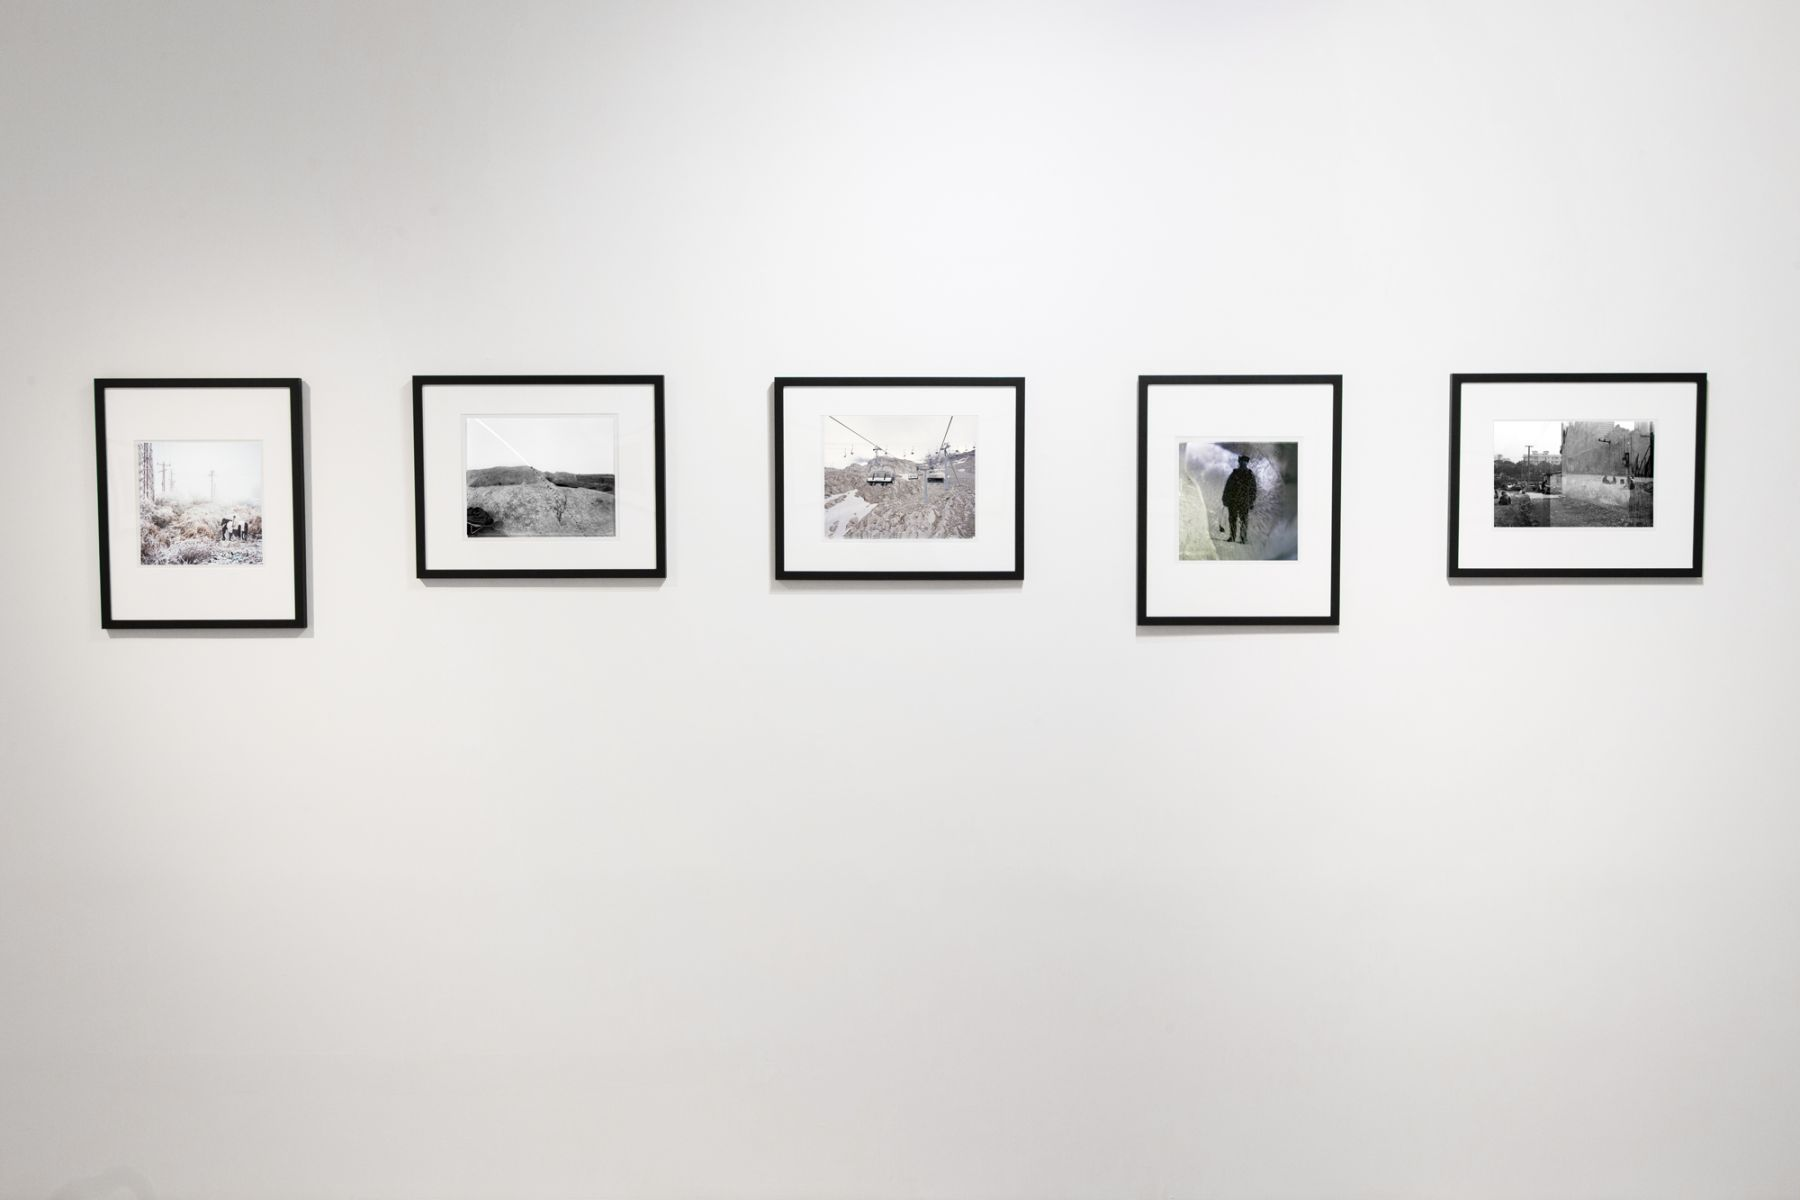 FotoFilmic 2015 International Competition installation, Sous Les Etoiles Gallery